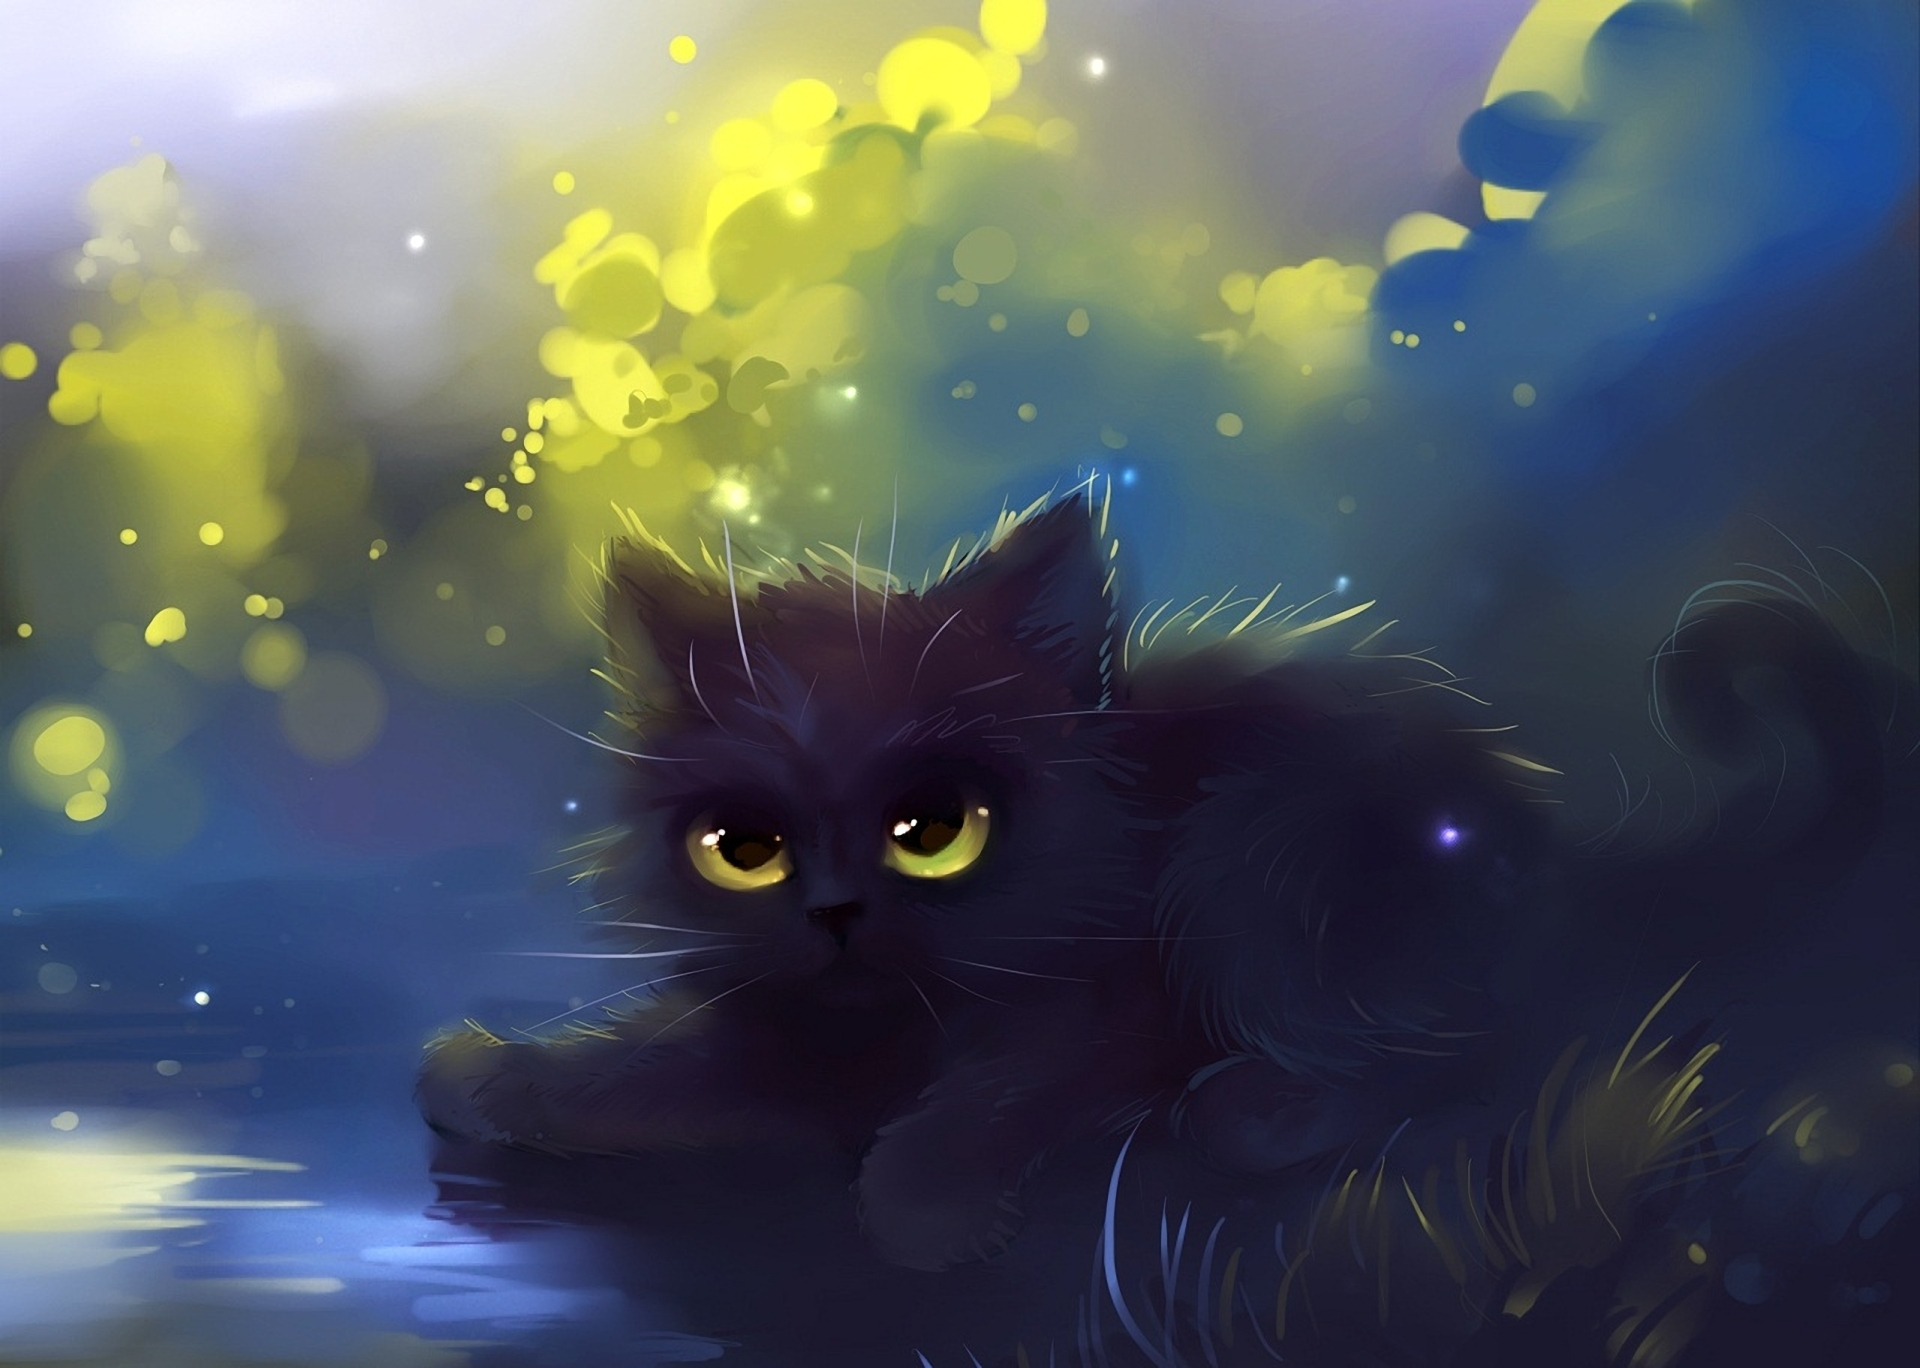 Anime Cute Black Cats 2624041 Hd Wallpaper Backgrounds Download